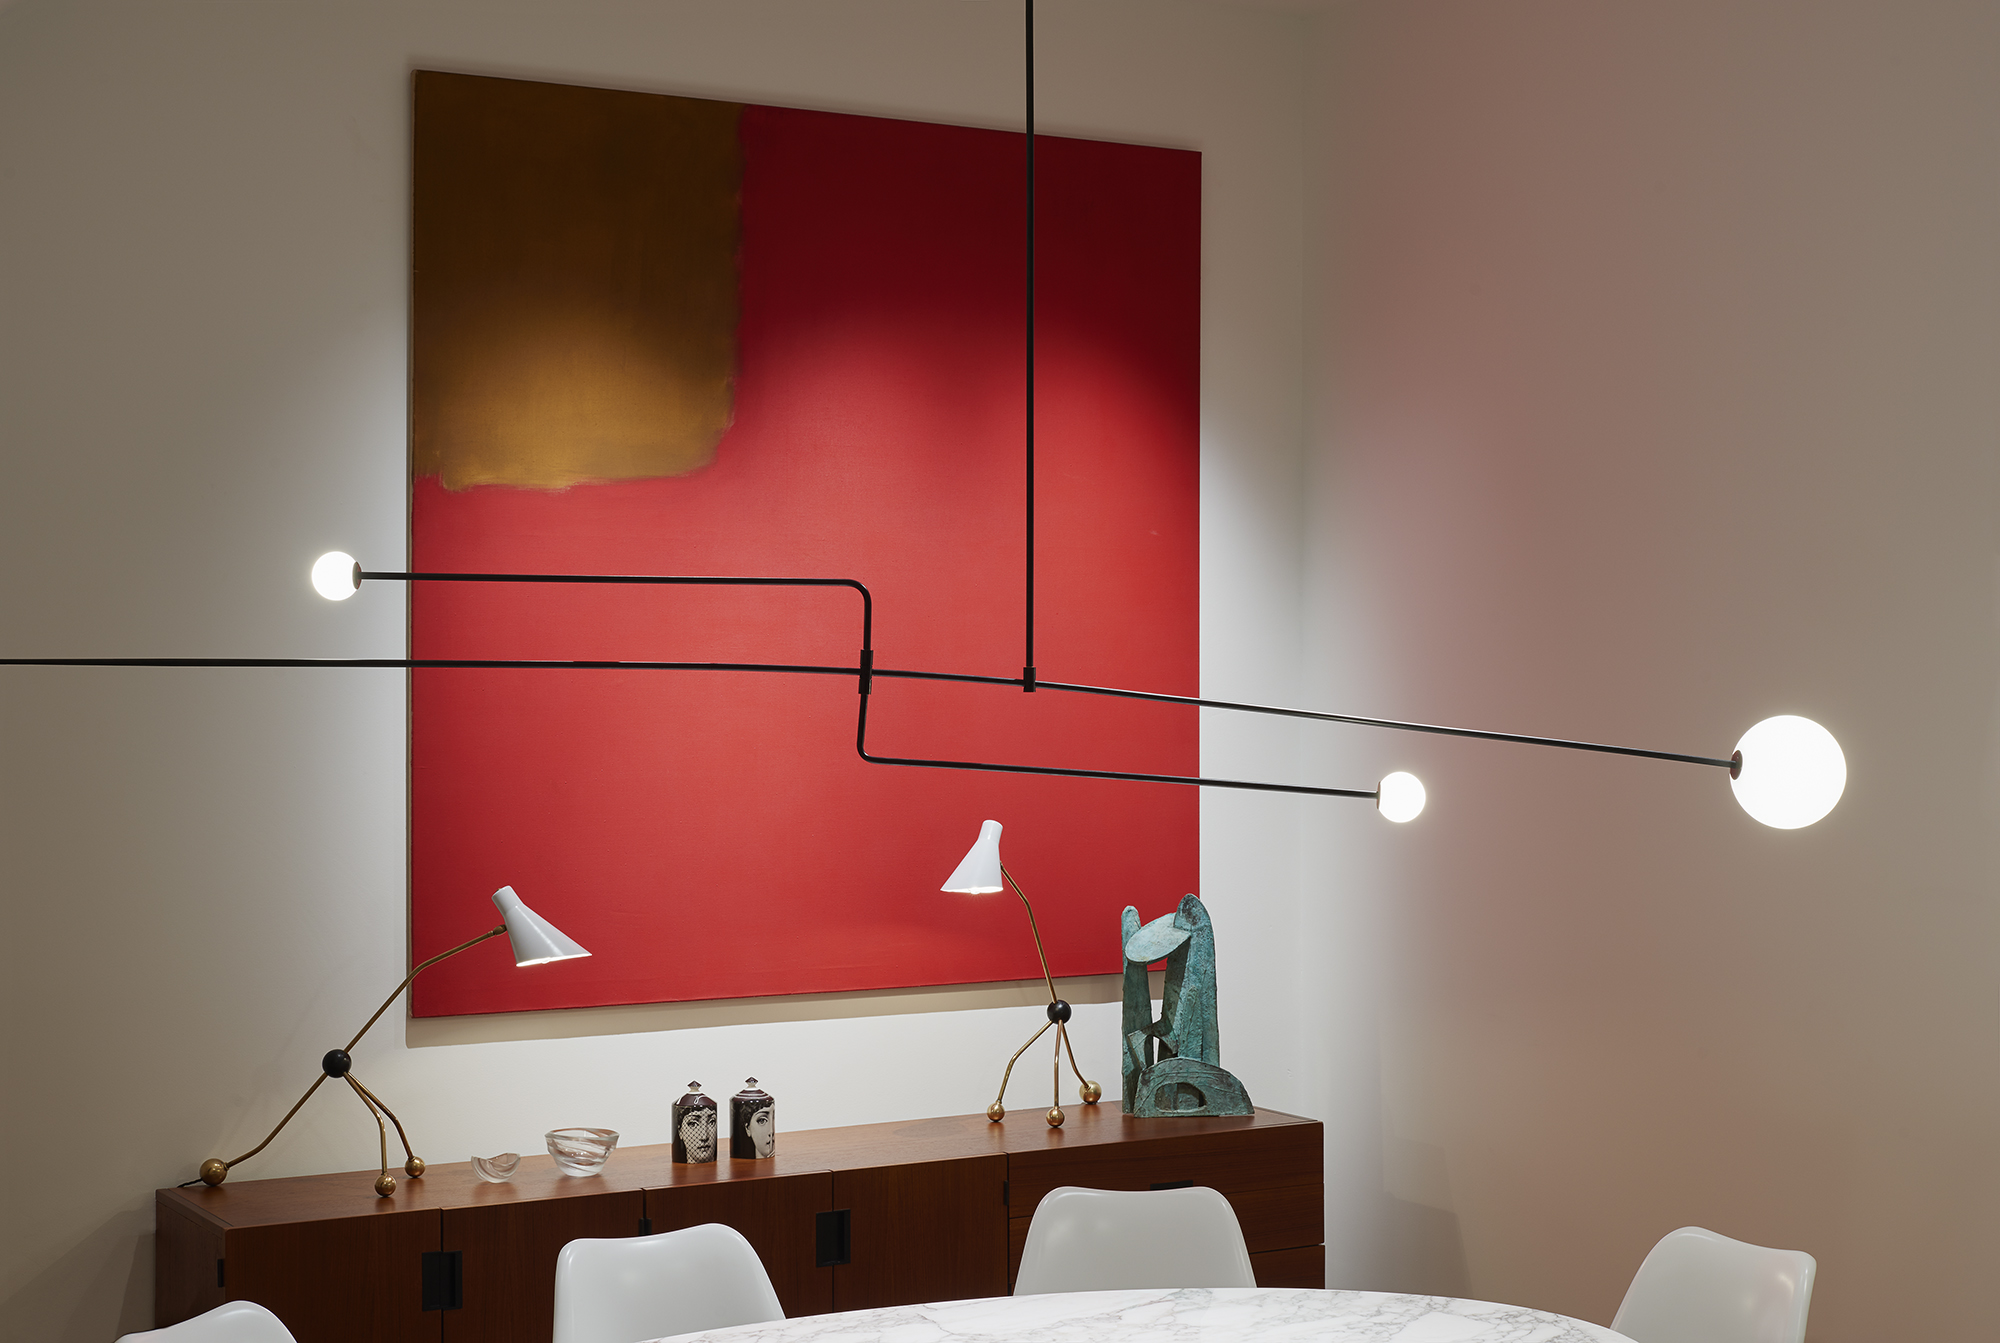 Vintage art and furniture as well as contemporary pieces were combined in the apartment interiors.